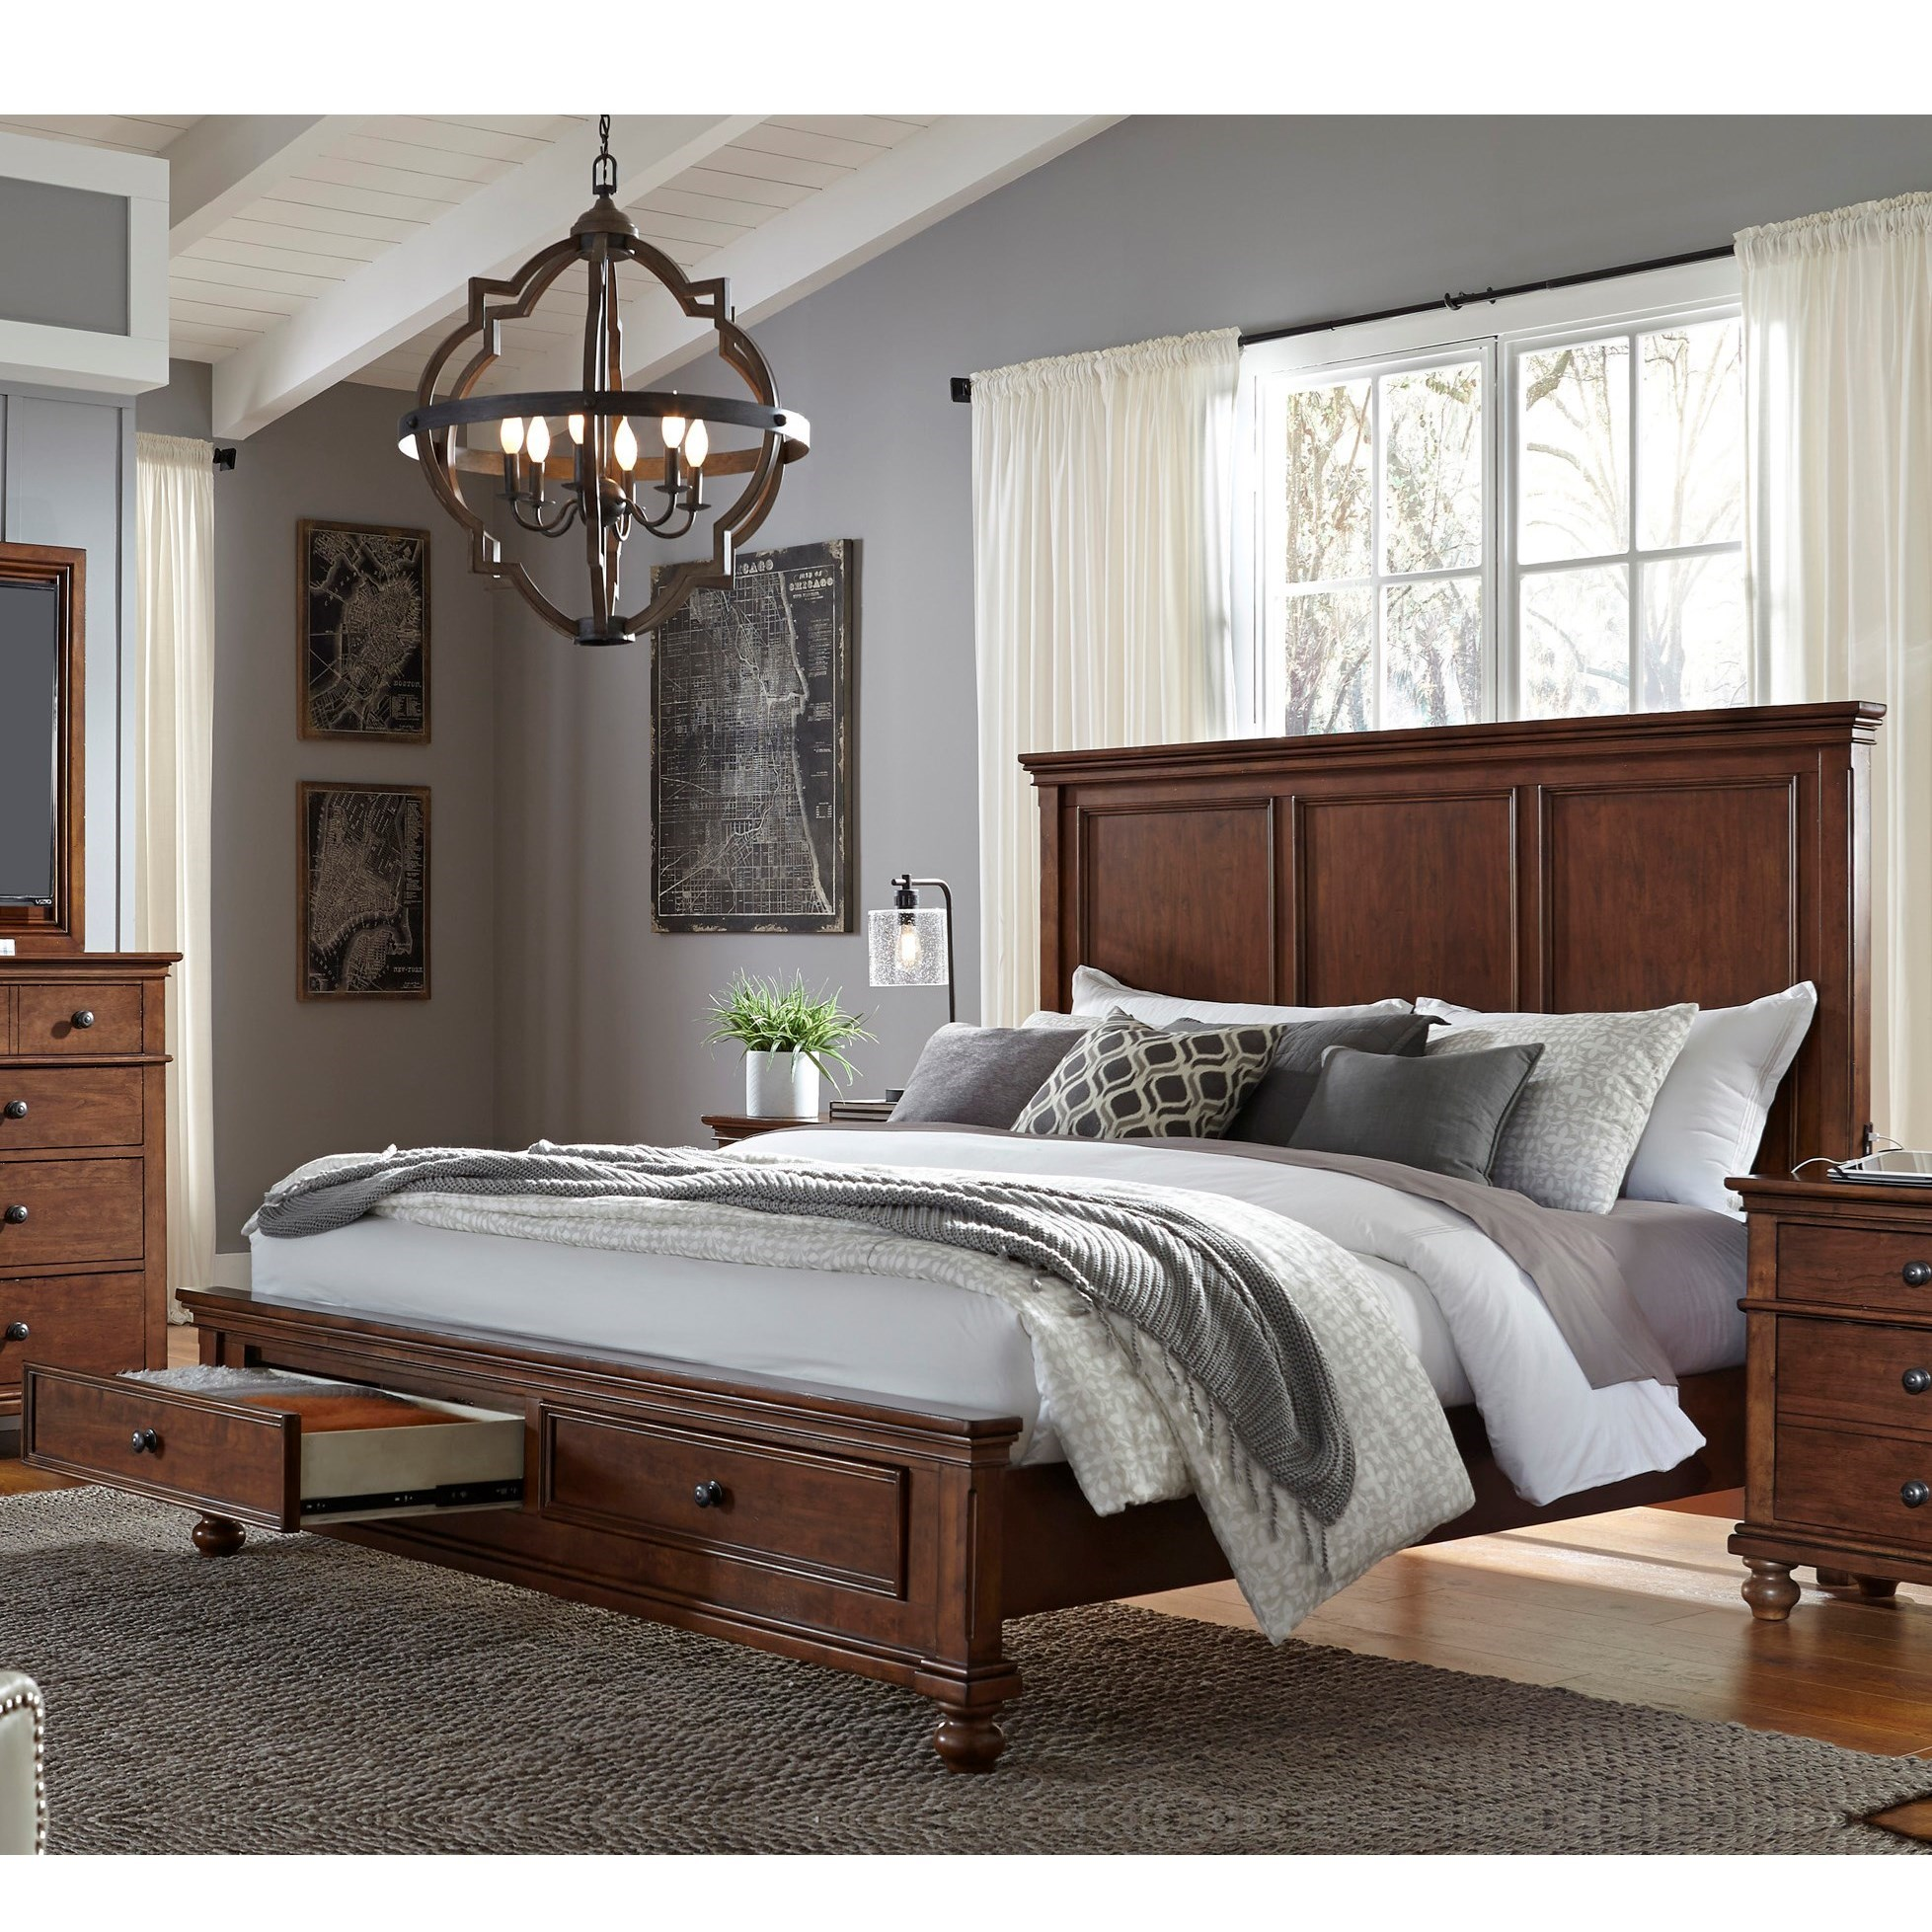 Aspenhome Oxford Cal King Storage Bed - Item Number: I07-415+407D+410-WBR